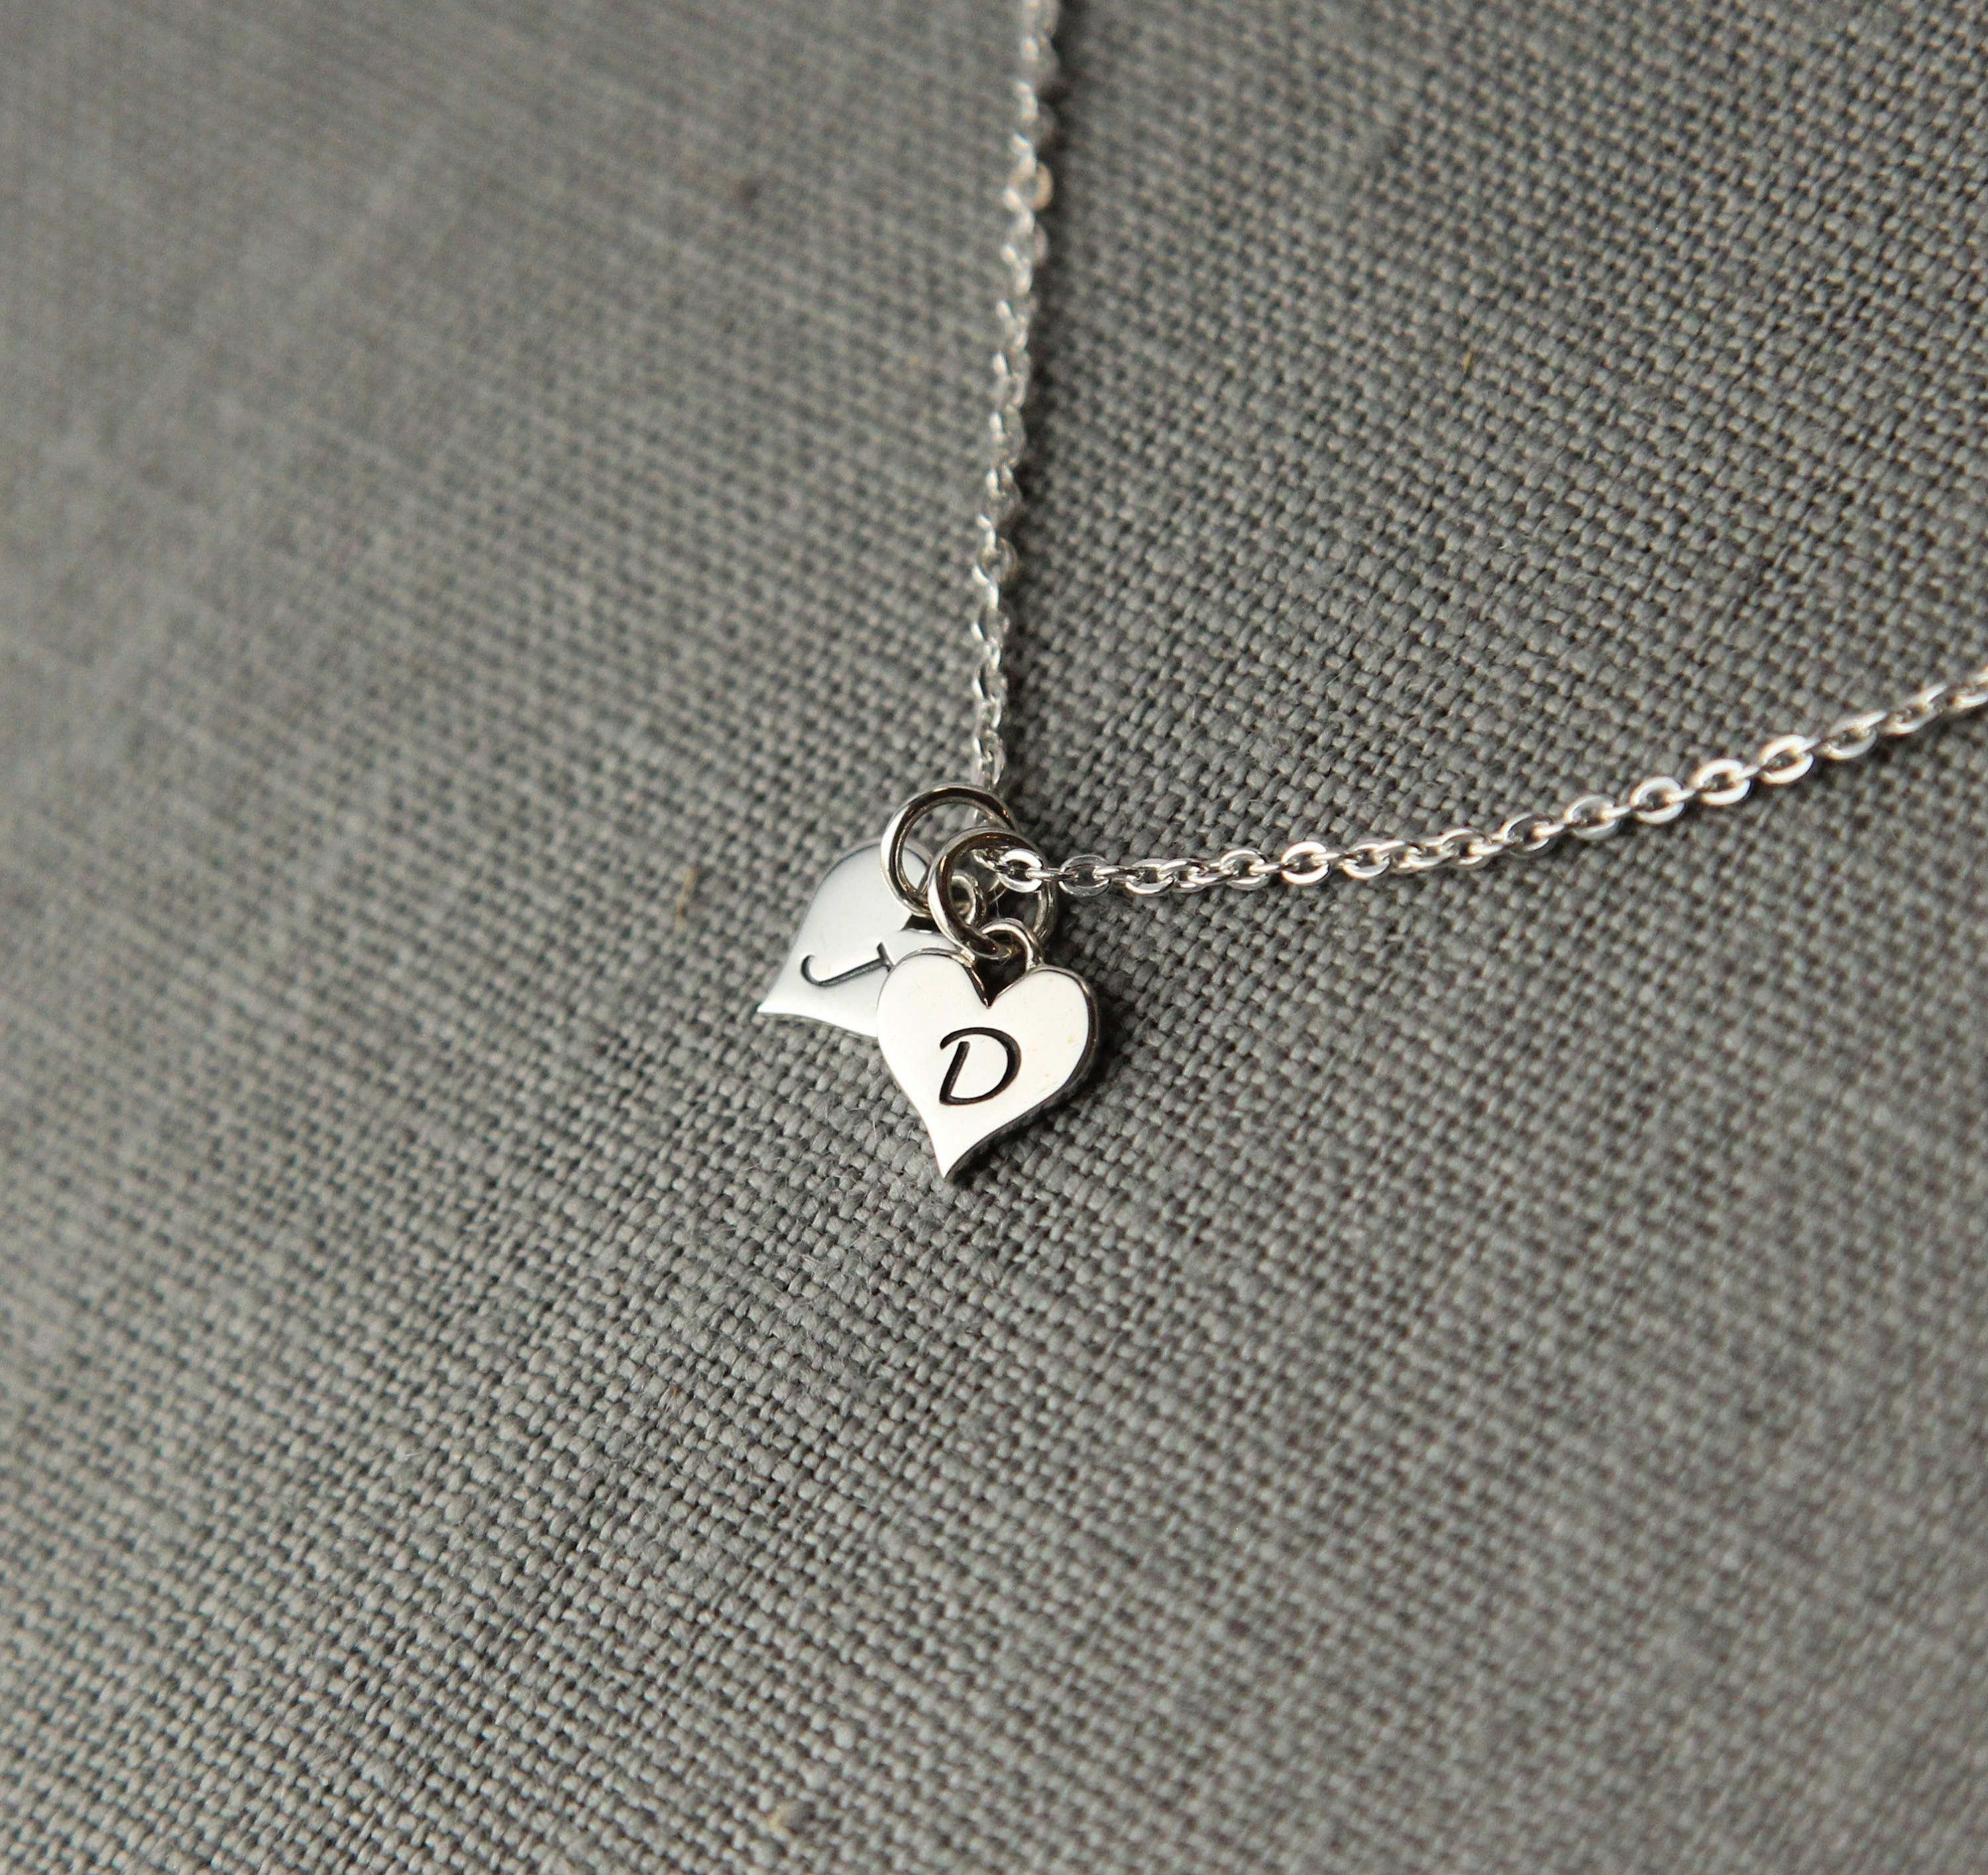 Sterling Husband and Wife Initial Necklace Girlfriend Boyfriend Custom Couples Initial BIRTHDAY GIFT for HIM with Date and Initials